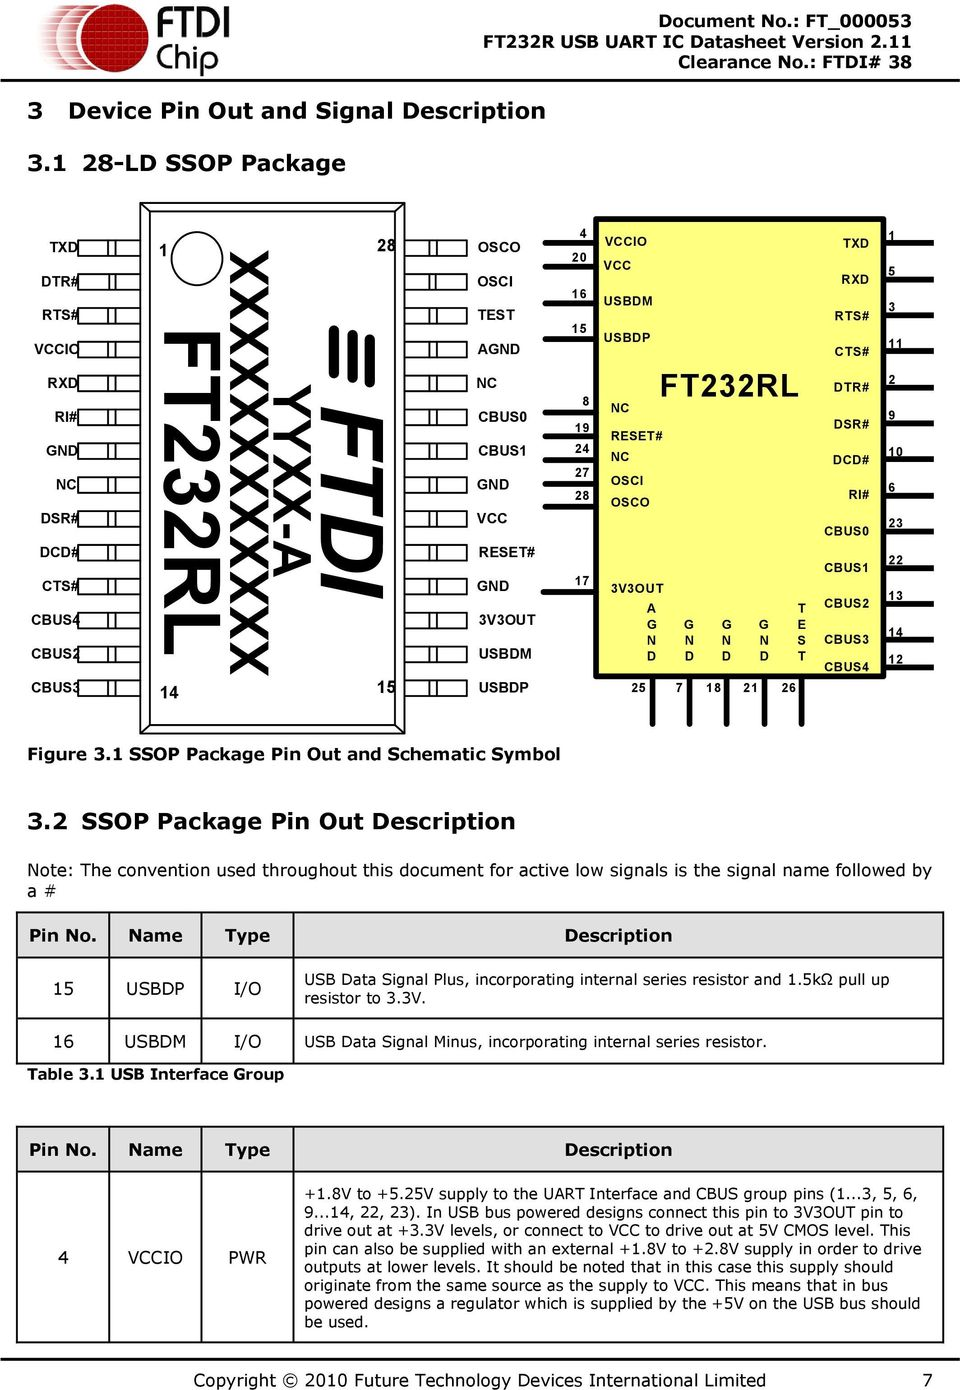 Future Technology Devices International Ltd Ft232r Usb Uart Ic Pdf Schematic Symbol Vccio Vcc Usbm Usbp C Reset Osci Osco 3v3out A Ft232rl 25 7 18